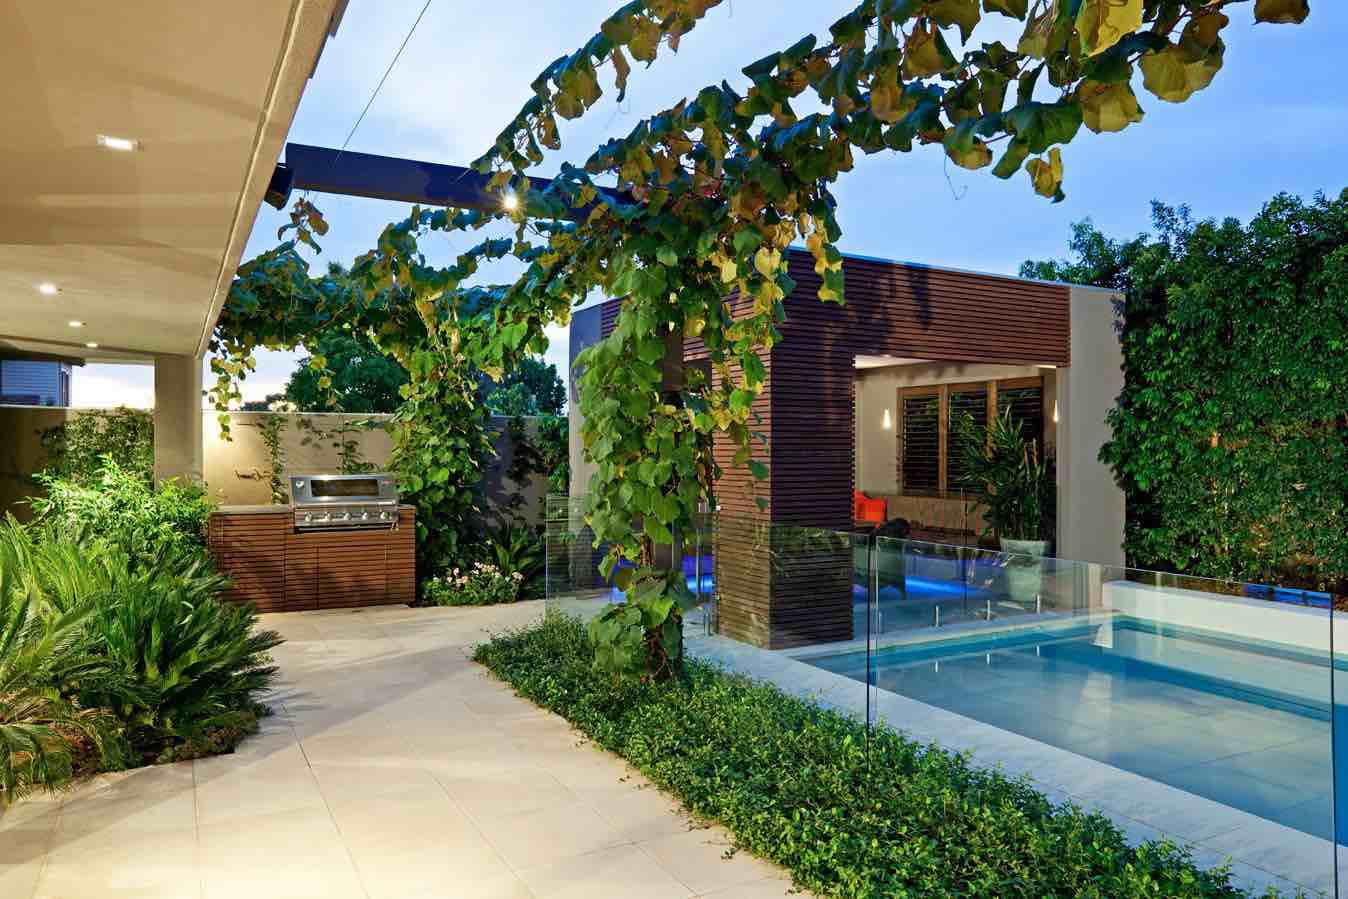 41 Backyard Design Ideas For Small Yards Worthminer in Design Ideas For Small Backyards